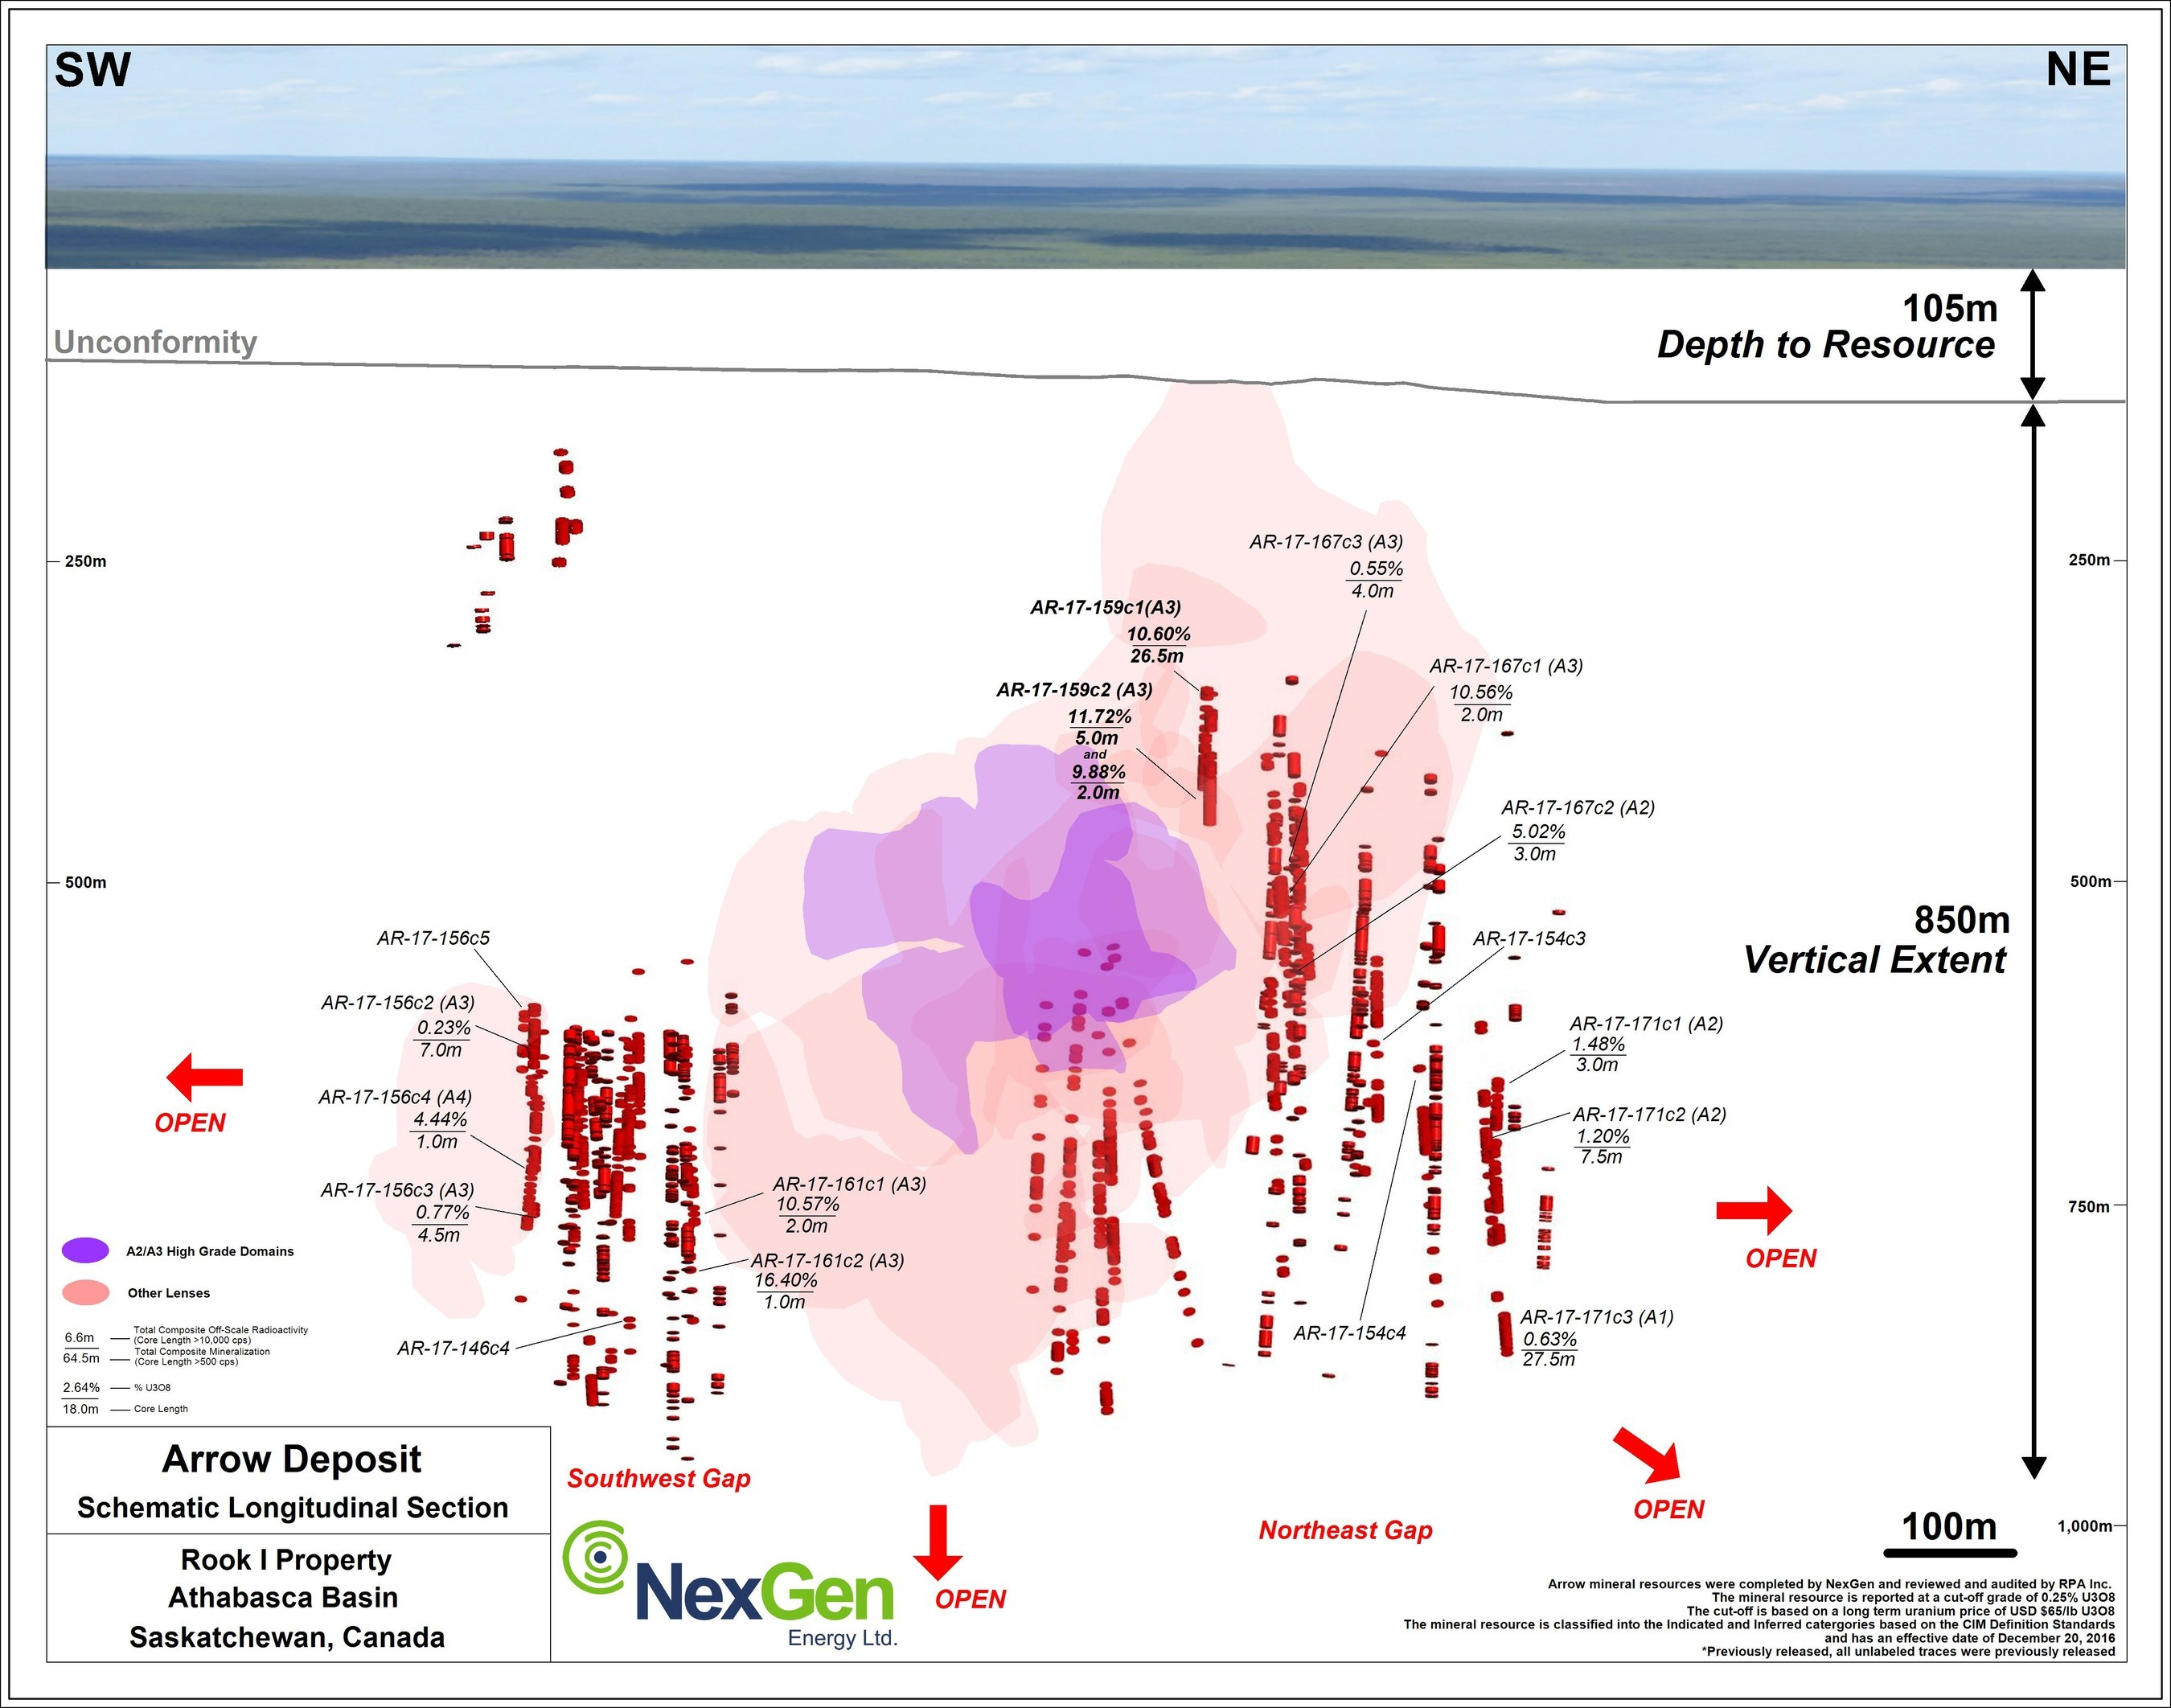 Figure 2: Arrow Deposit Schematic Long Section (CNW Group/NexGen Energy Ltd.)